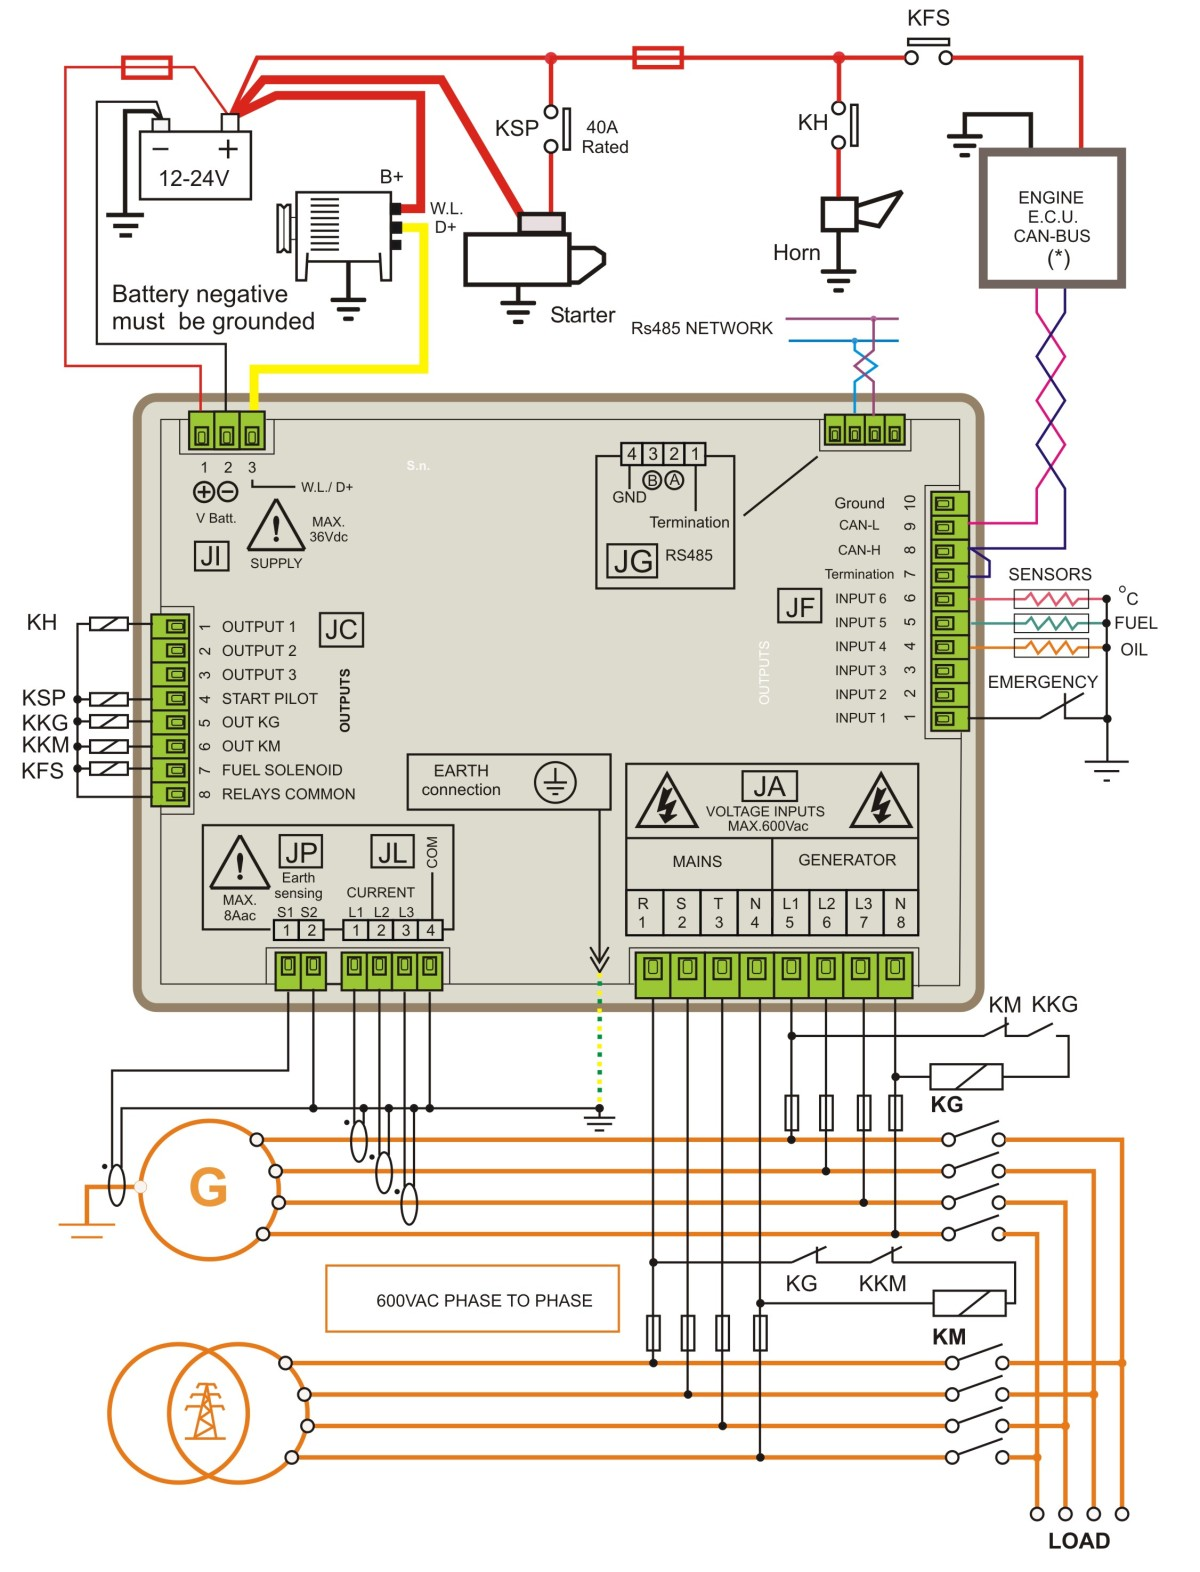 Control And Relay Panel Wiring Diagram : Dc relay wiring diagram get free image about